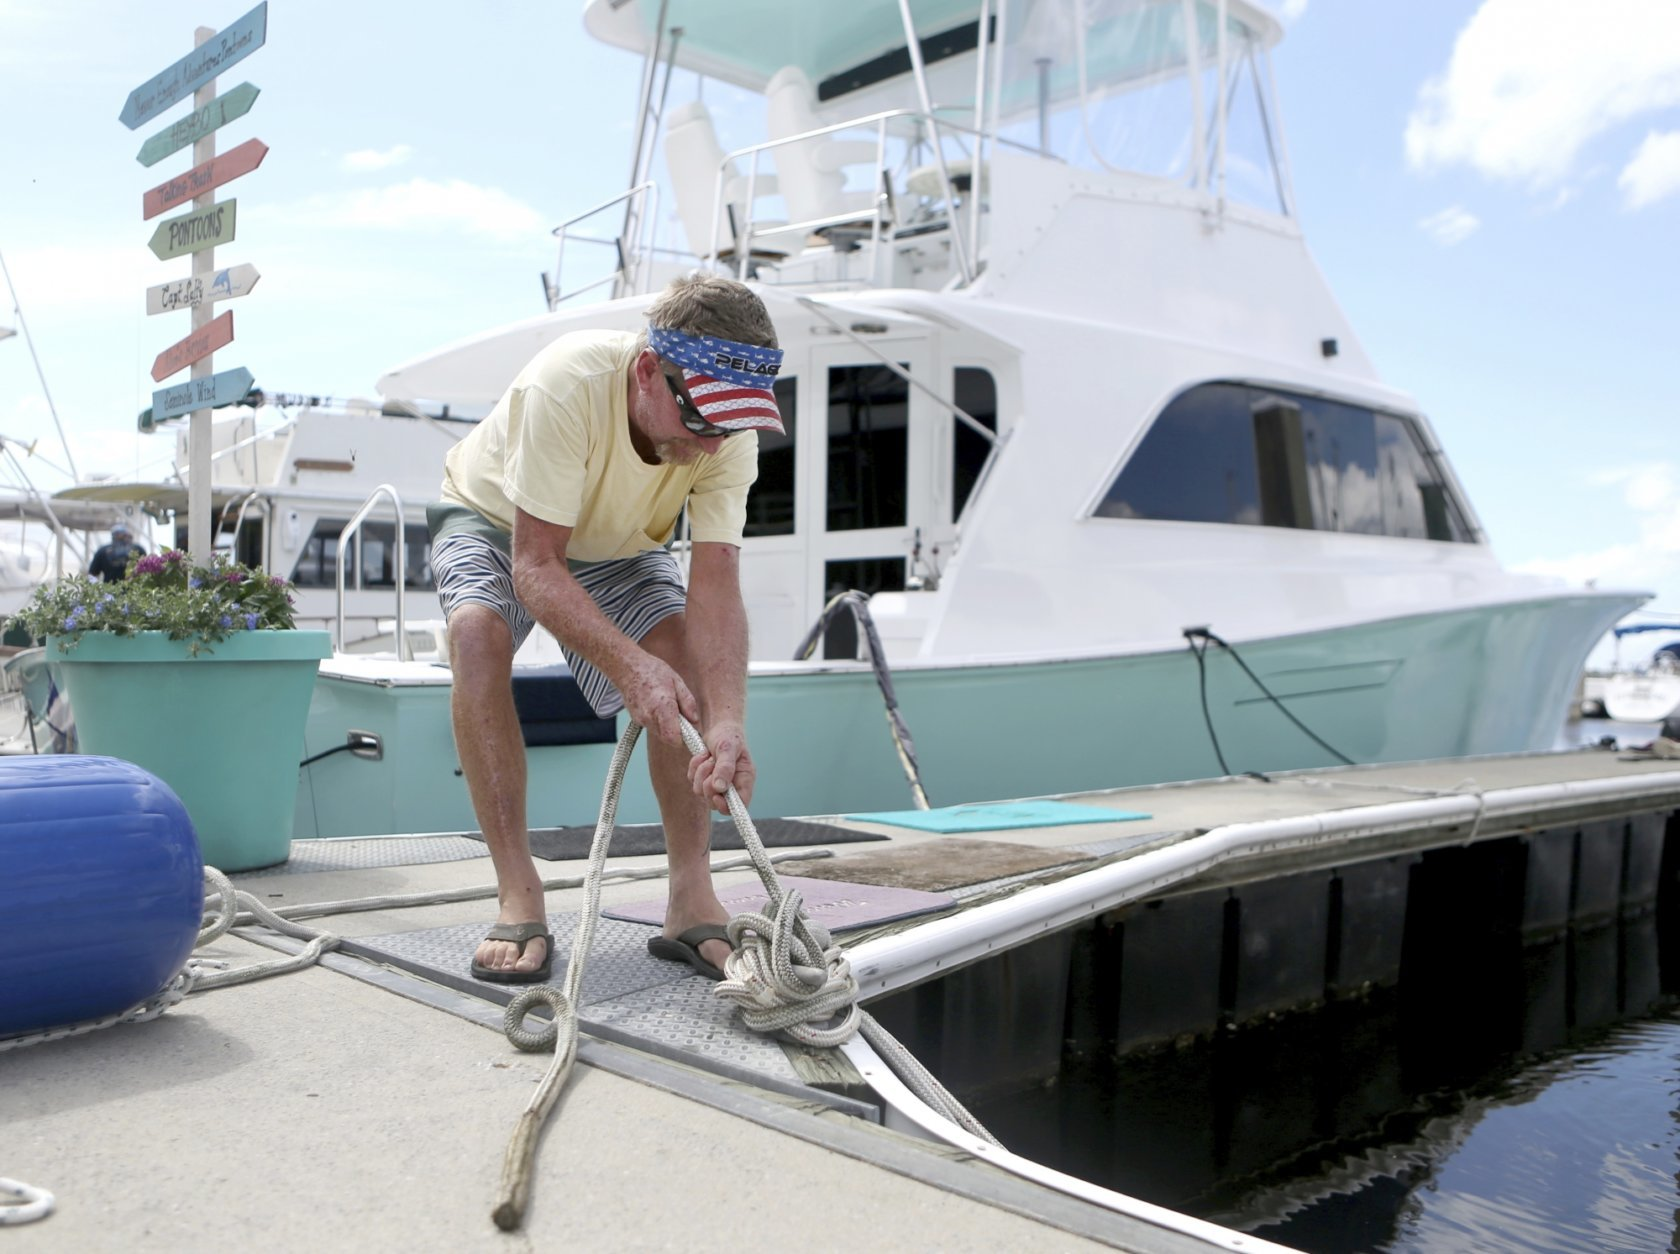 Rob Docko ties a knot while securing his boat at the St. Andrews Marina in Panama City, Fla., Monday, Oct. 8, 2018, to prepare for Hurricane Michael. (Patti Blake /News Herald via AP)